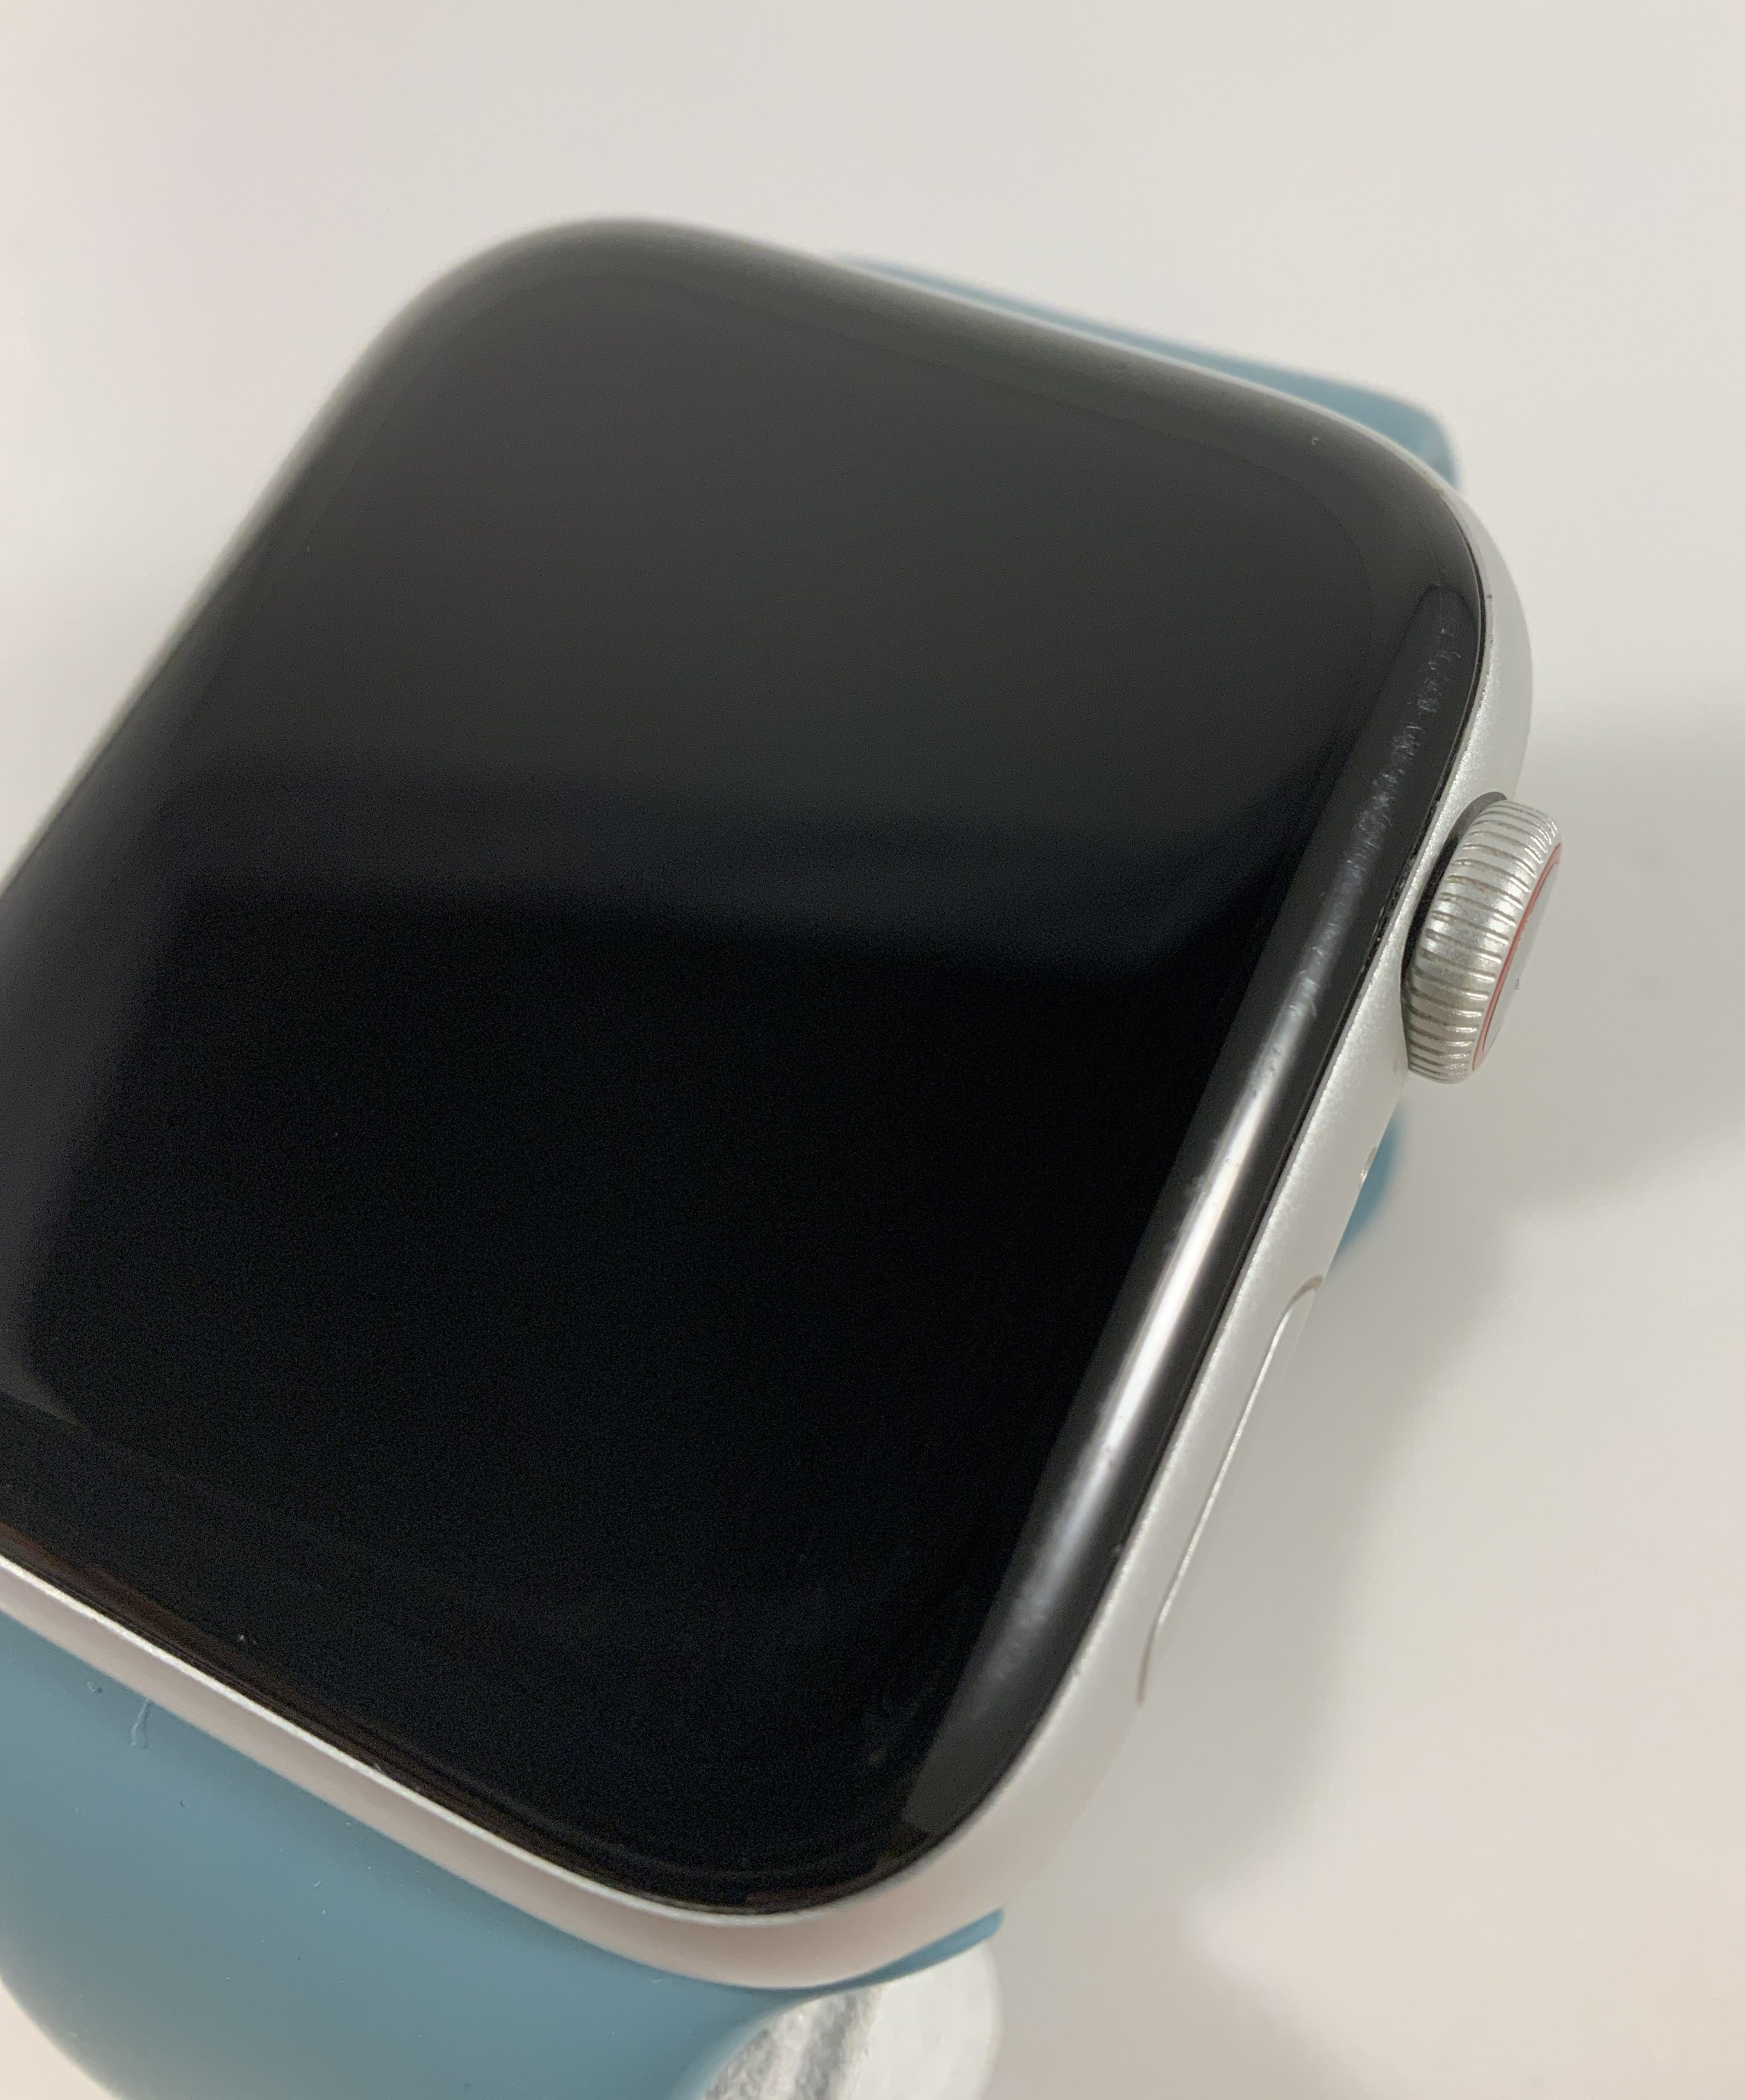 Watch Series 5 Aluminum Cellular (44mm), Silver, image 3